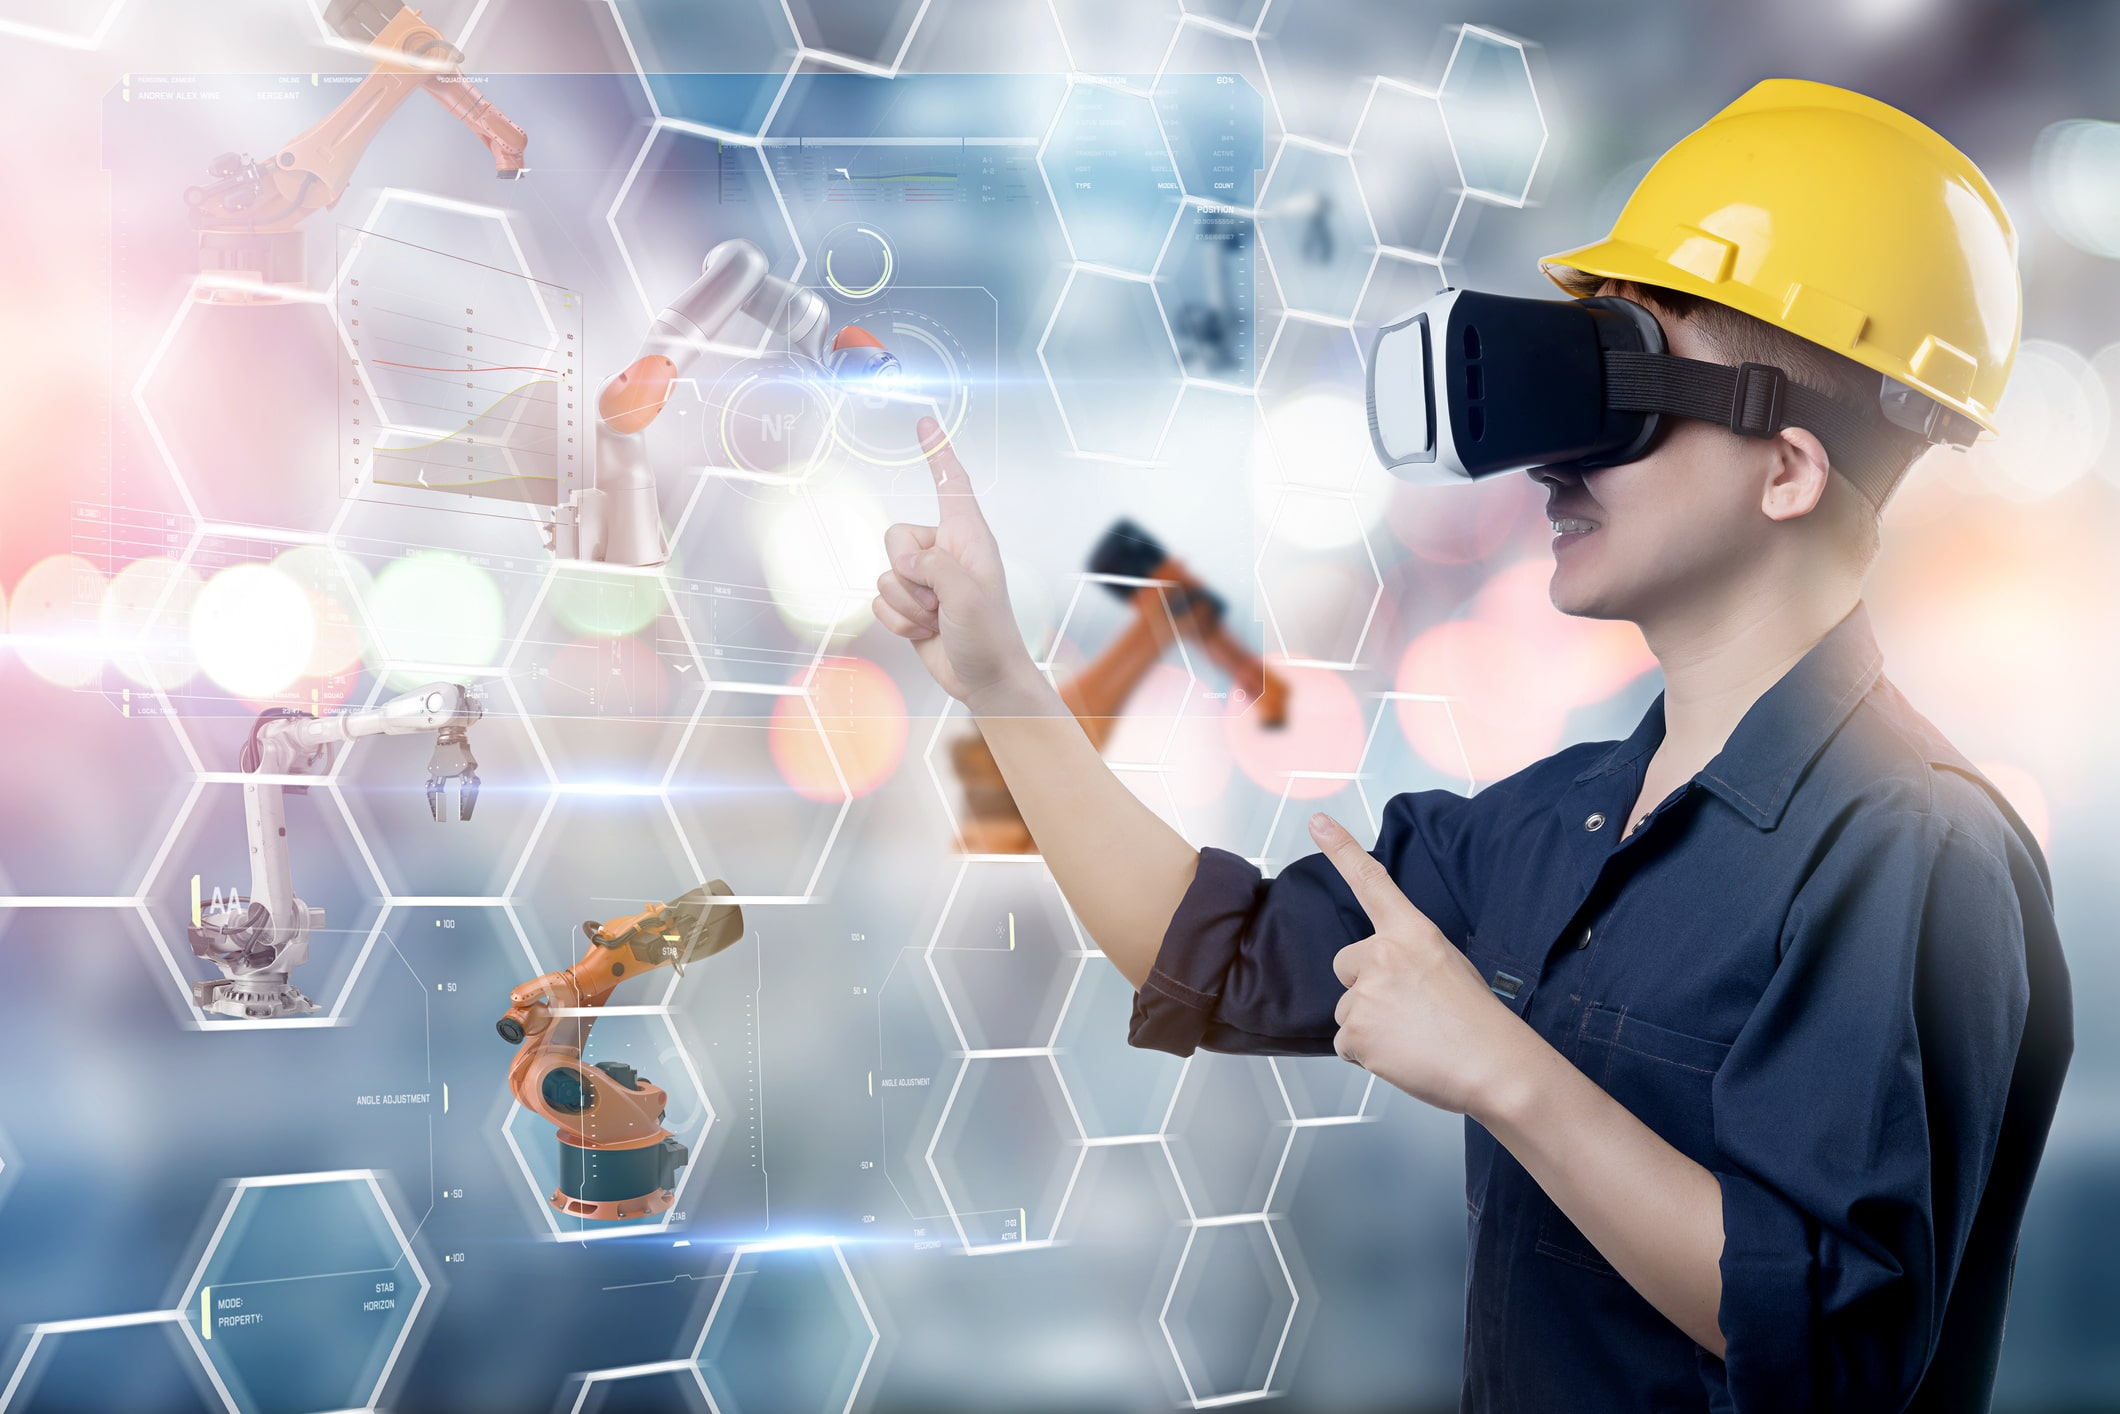 Engineer working, VR smart factory machine IOT internet of thing digital technology futuristic, Smart manufacturing digital process AI management technology app system automate robot control, virtual reality for training